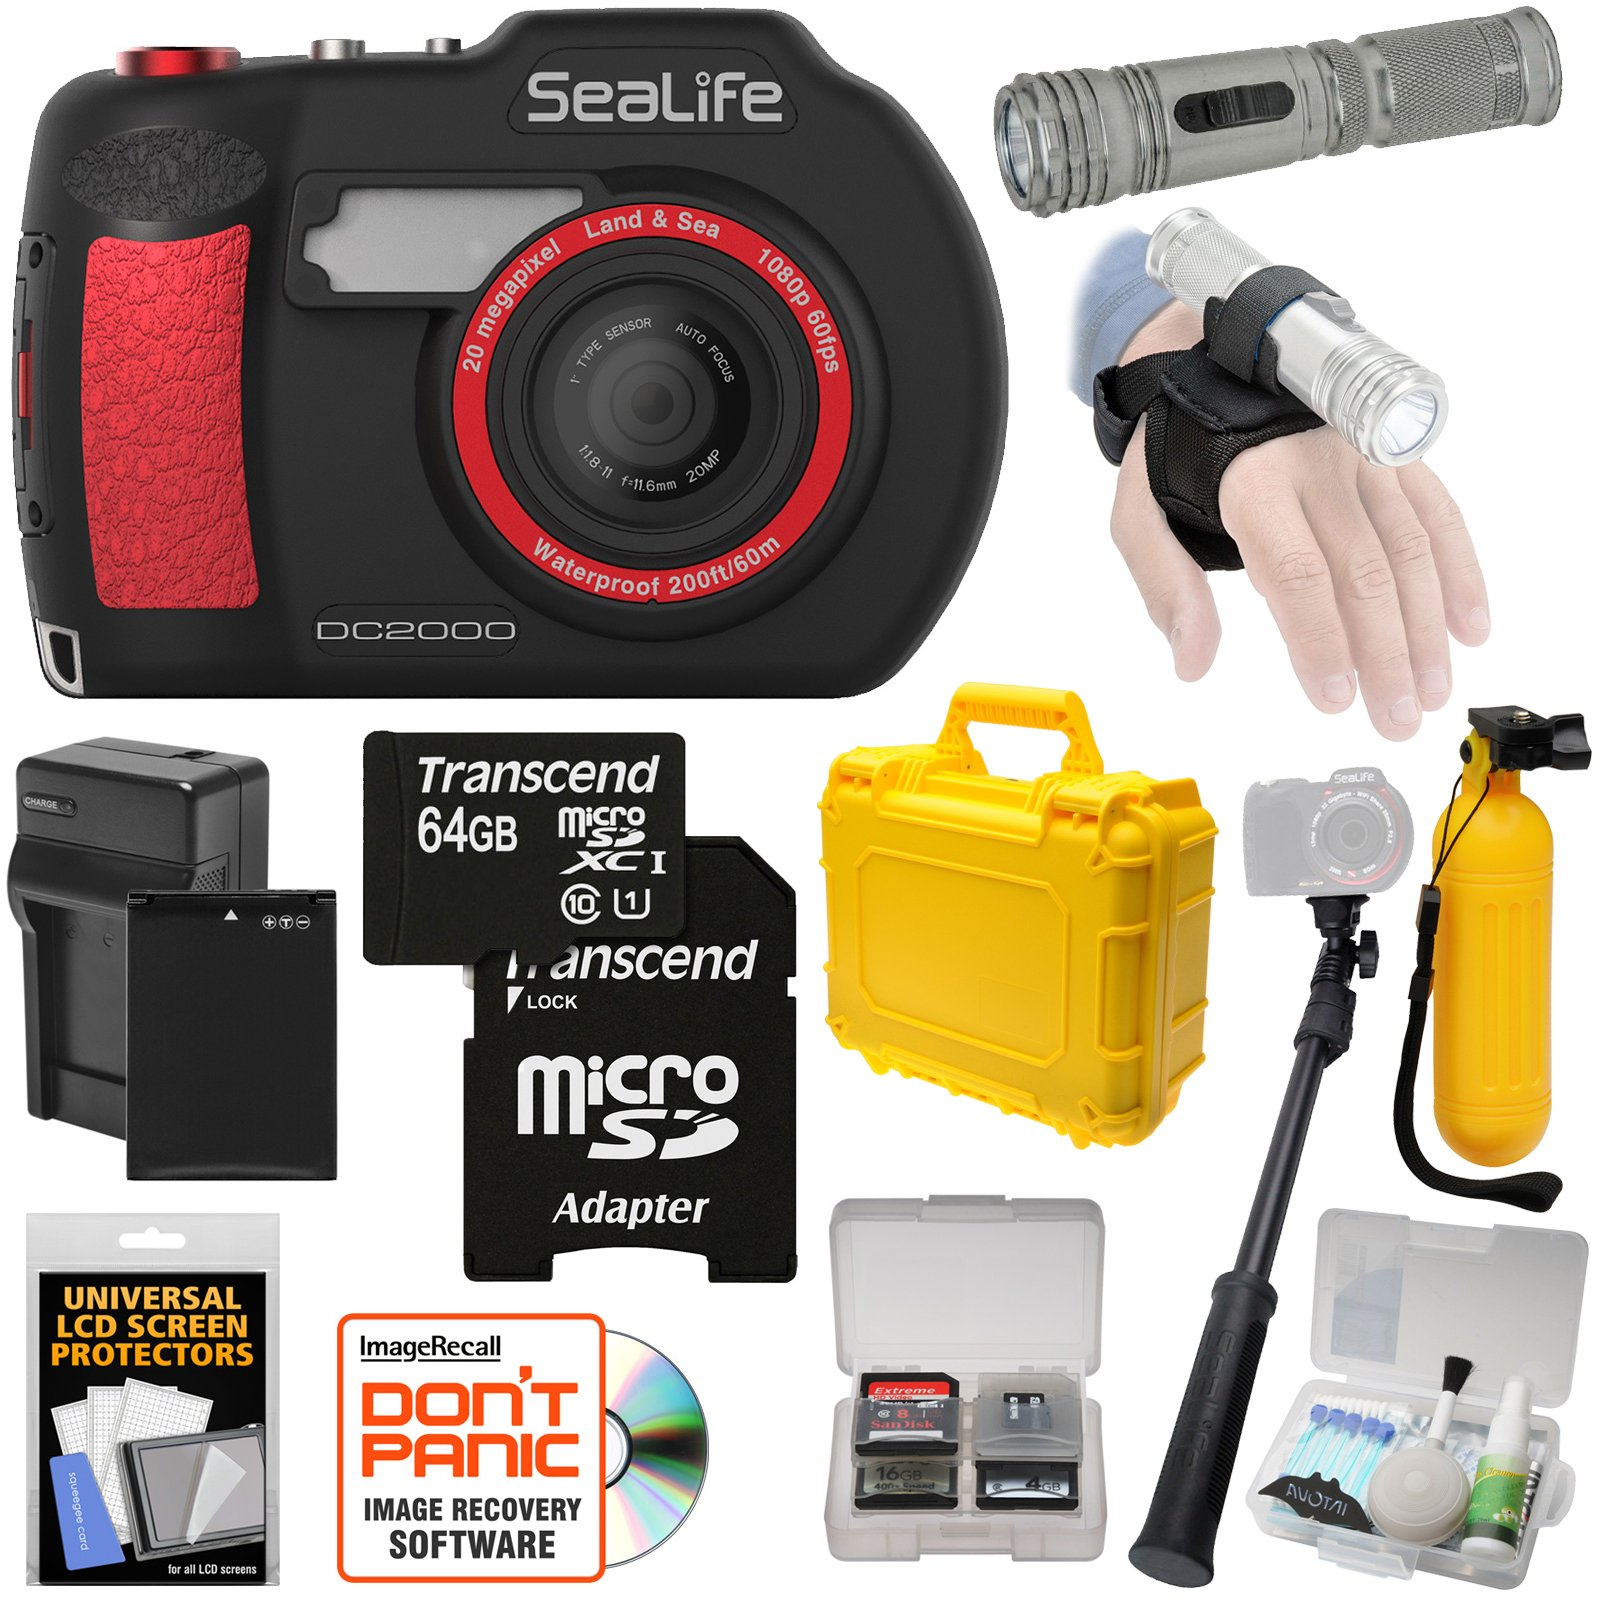 SeaLife DC2000 HD Underwater Digital Camera with AquaPod Selfie Stick + 64GB Card + Battery & Charger + Hard Case + Torch + Buoy + Kit by SeaLife